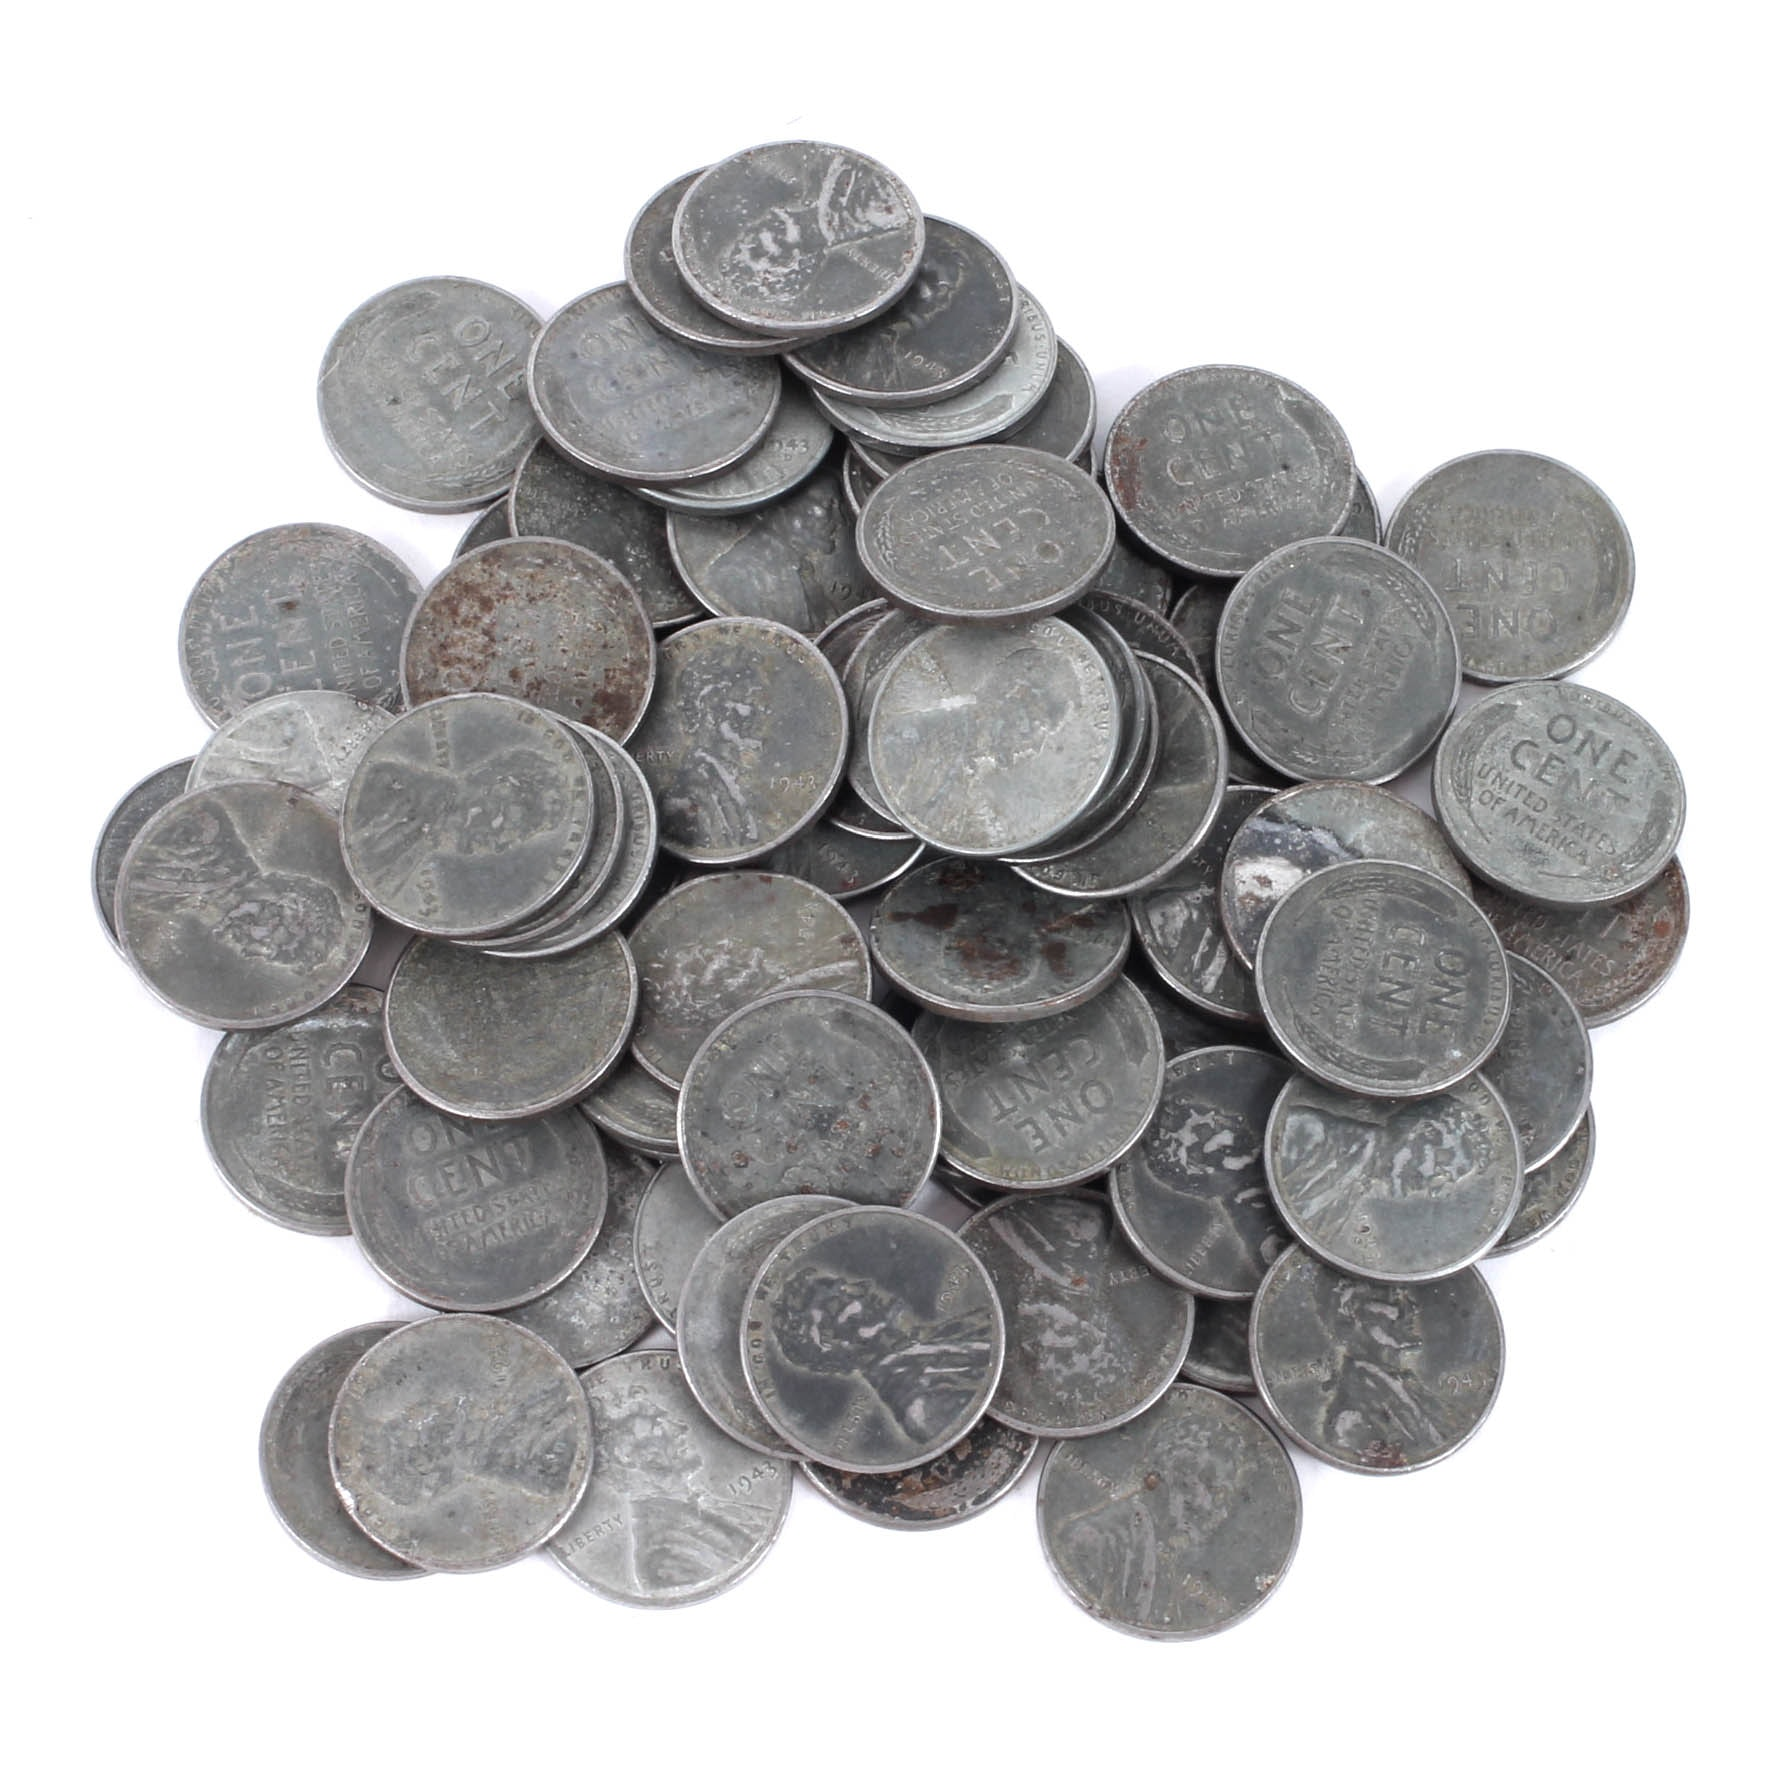 U.S. 1943 Steel Penny Collection